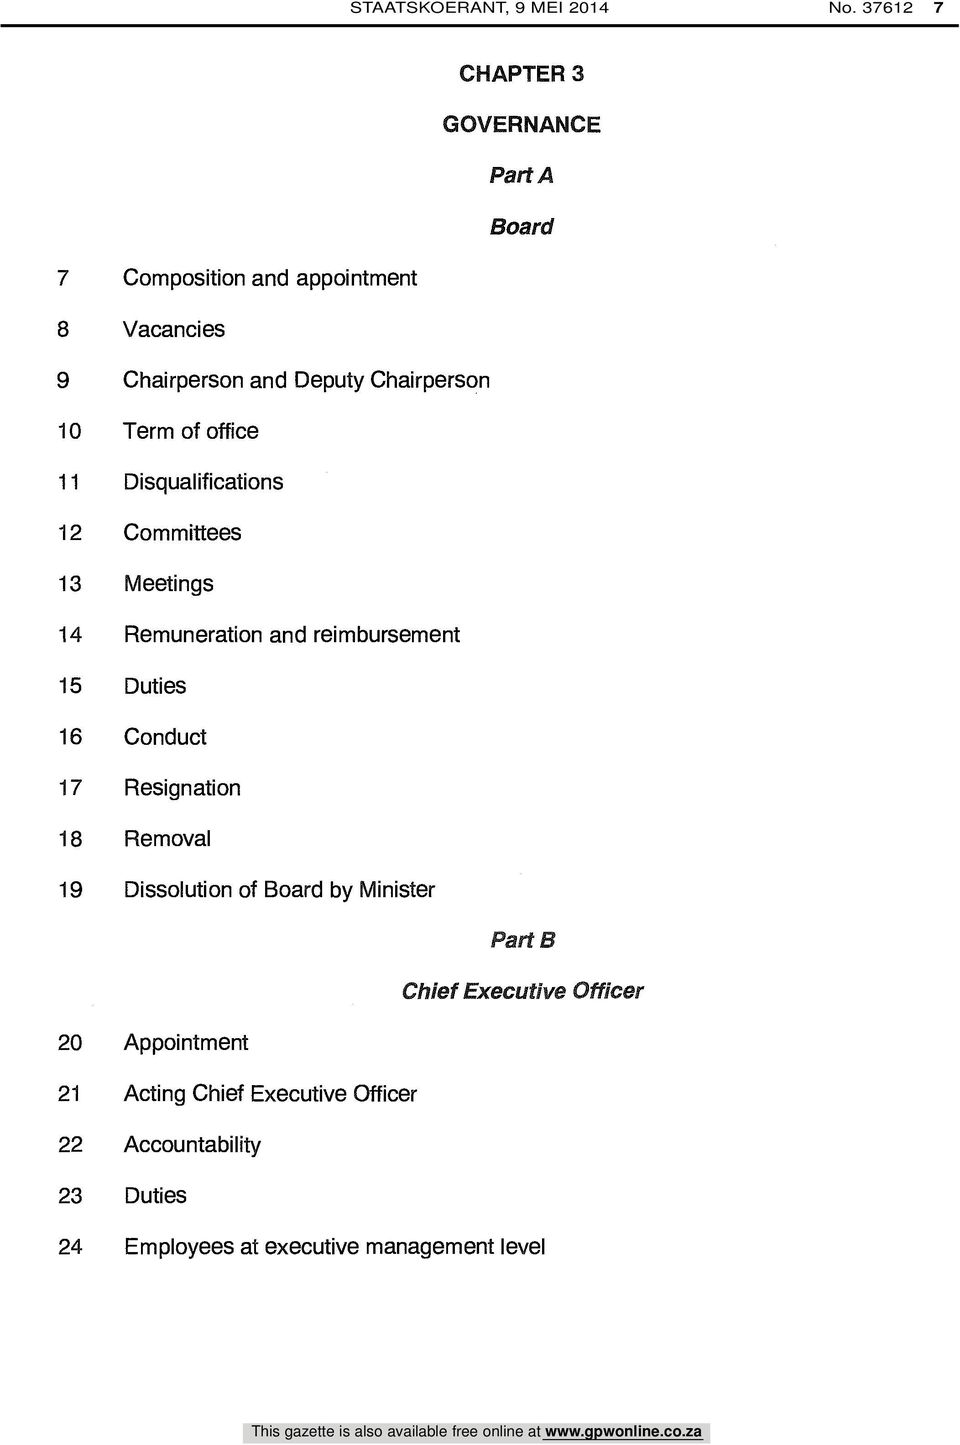 10 Term of office 11 Disqualifications 12 Committees 13 Meetings 14 Remuneration and reimbursement 15 Duties 16 Conduct